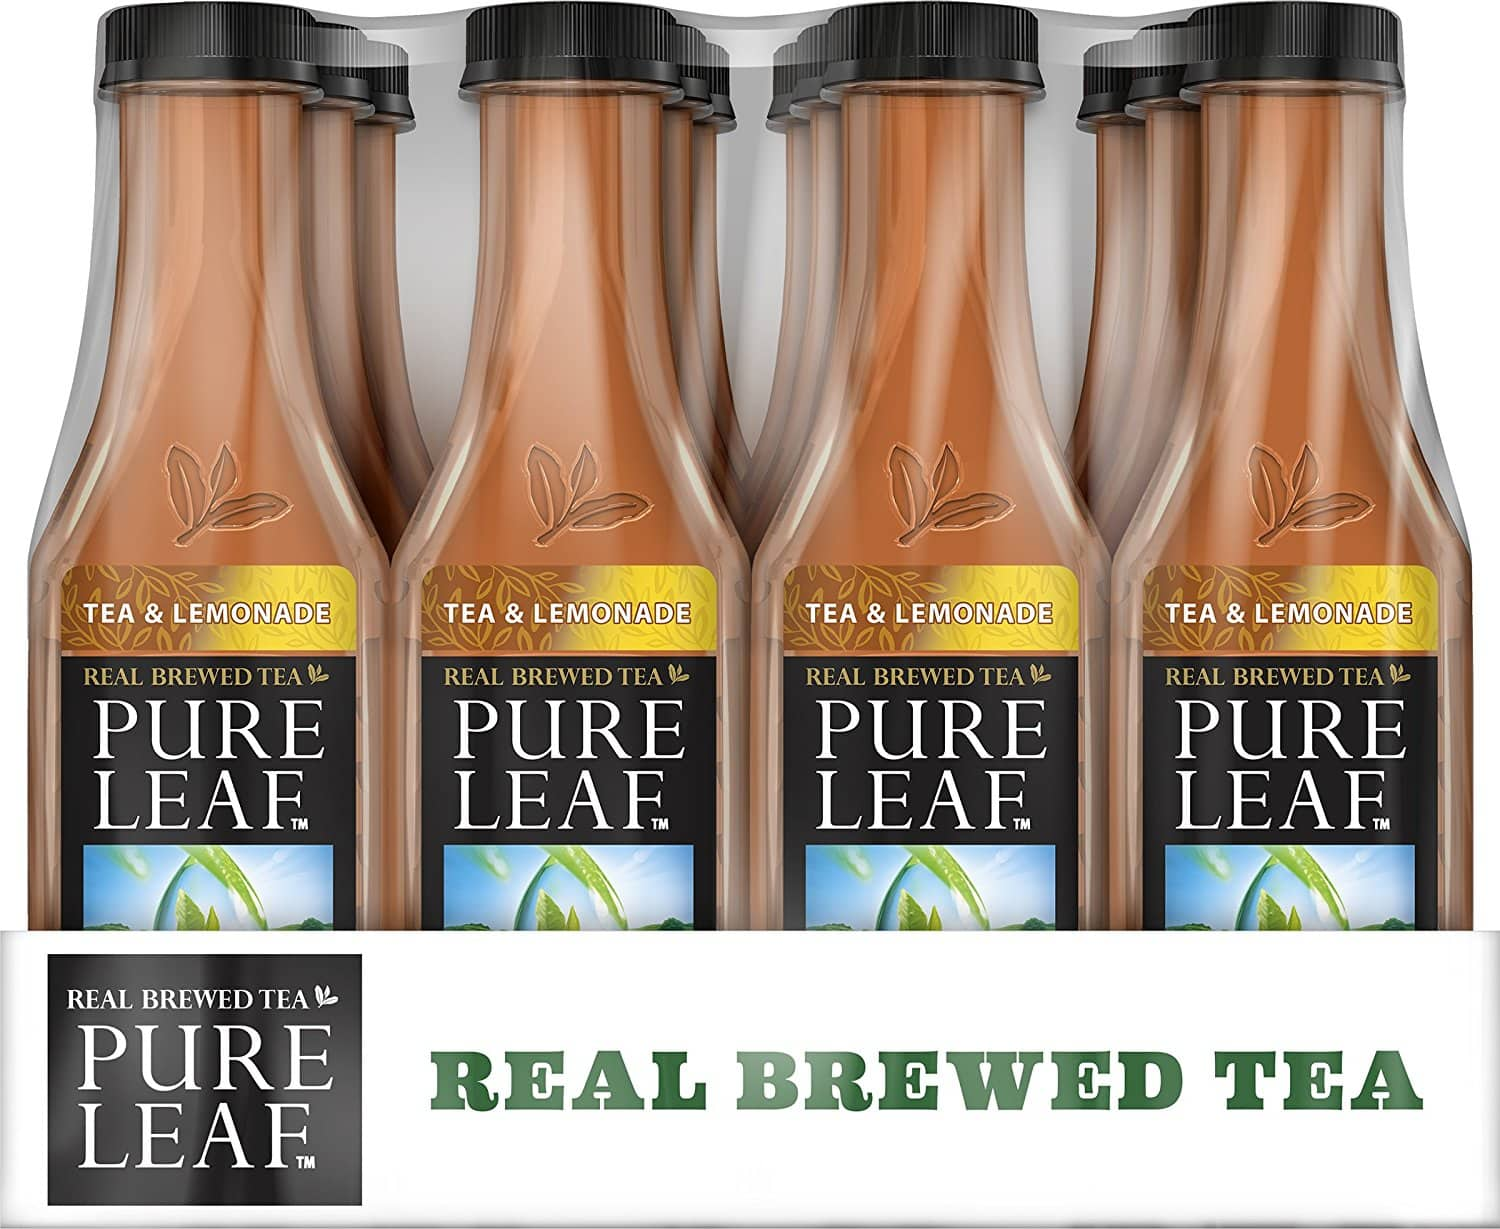 Pack of 12 18.5 Ounce Pure Leaf Iced Tea, Tea and Lemonade, Real Brewed Black Tea. $7.60 With S&S + FS w/Prime